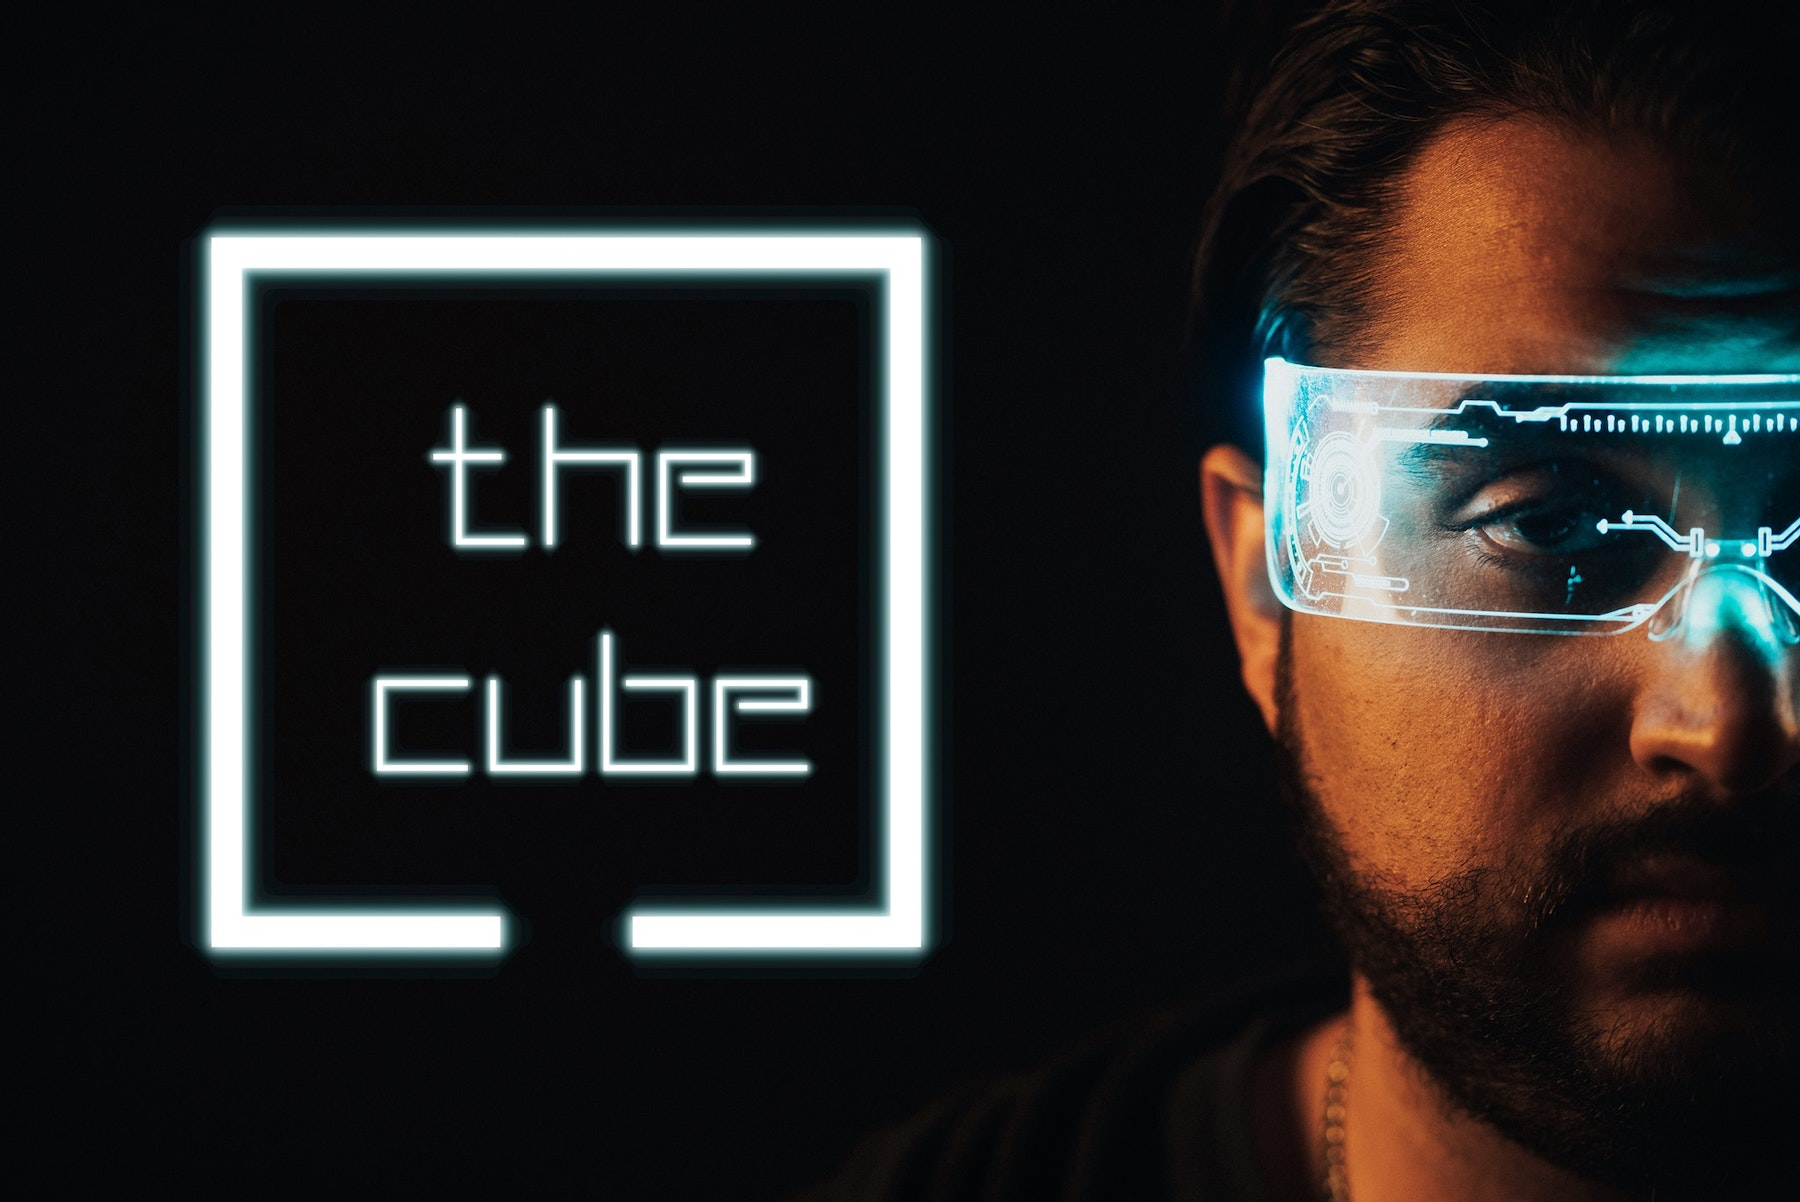 The Cube: An Interactive Experience For The Socially Distanced Era